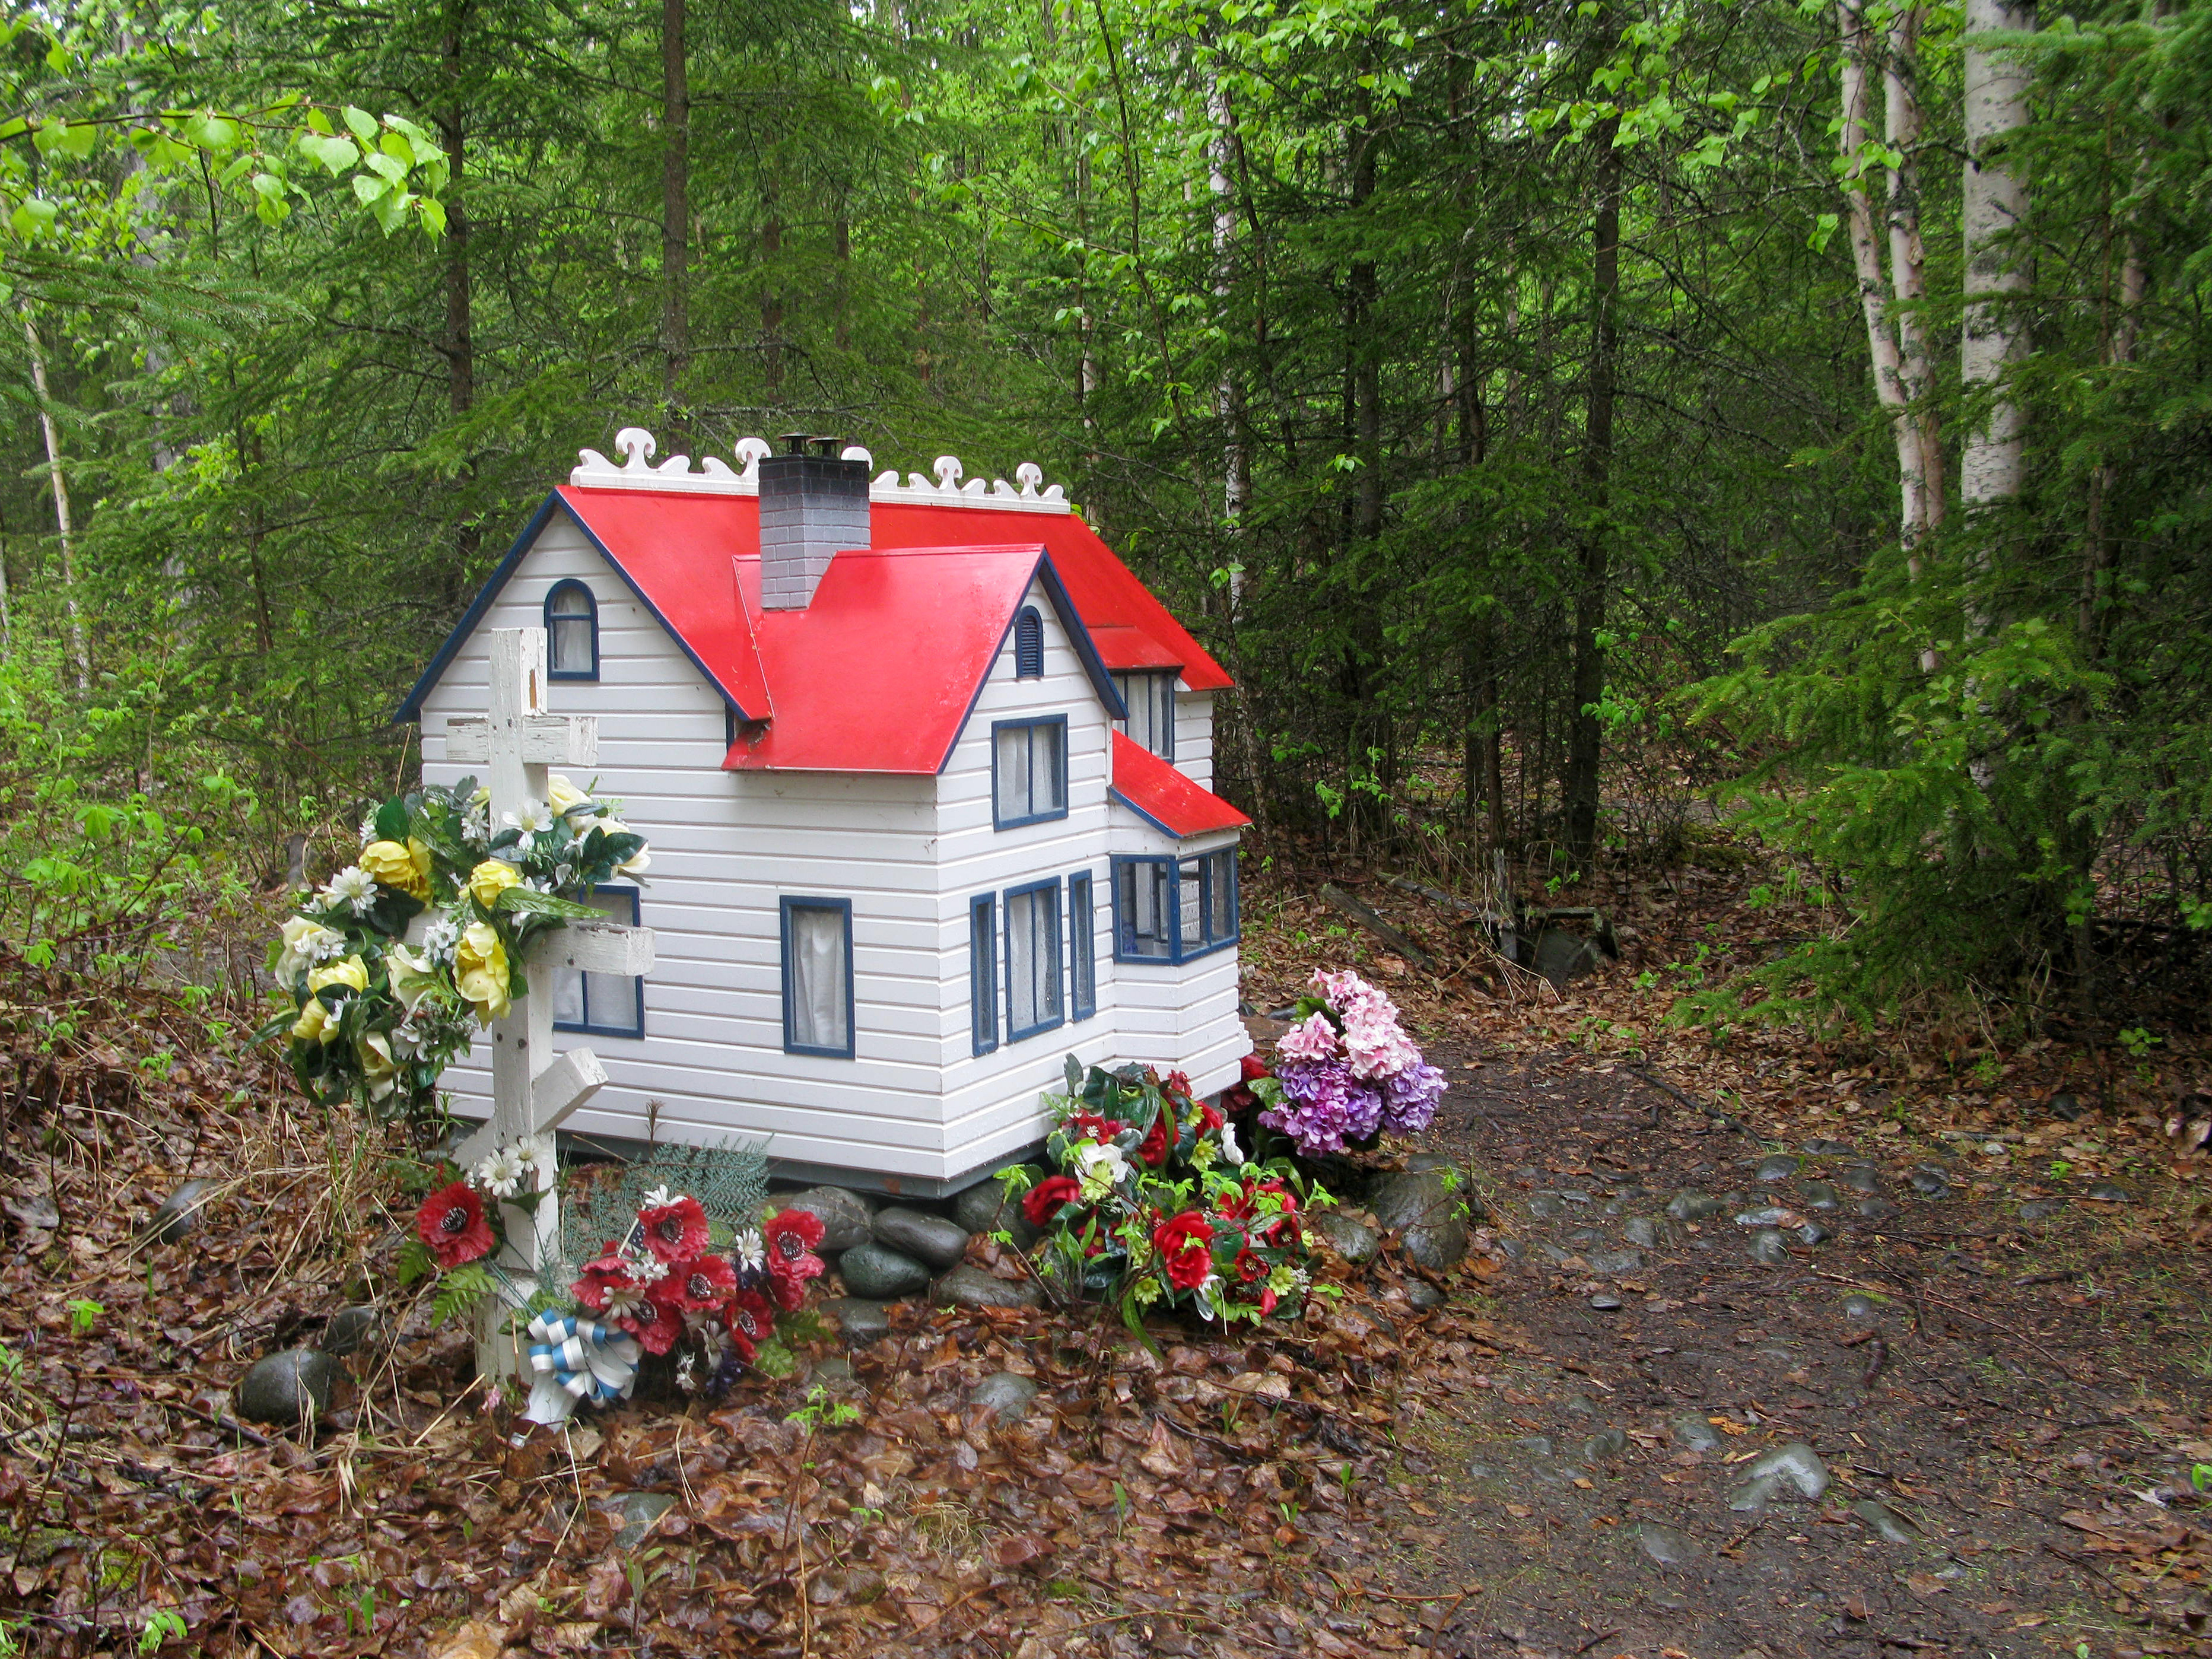 The spirit house for Marie Rosenberg, who died in 2003, was built to resemble the girl's dormitory at the Eklutna Vocational School.